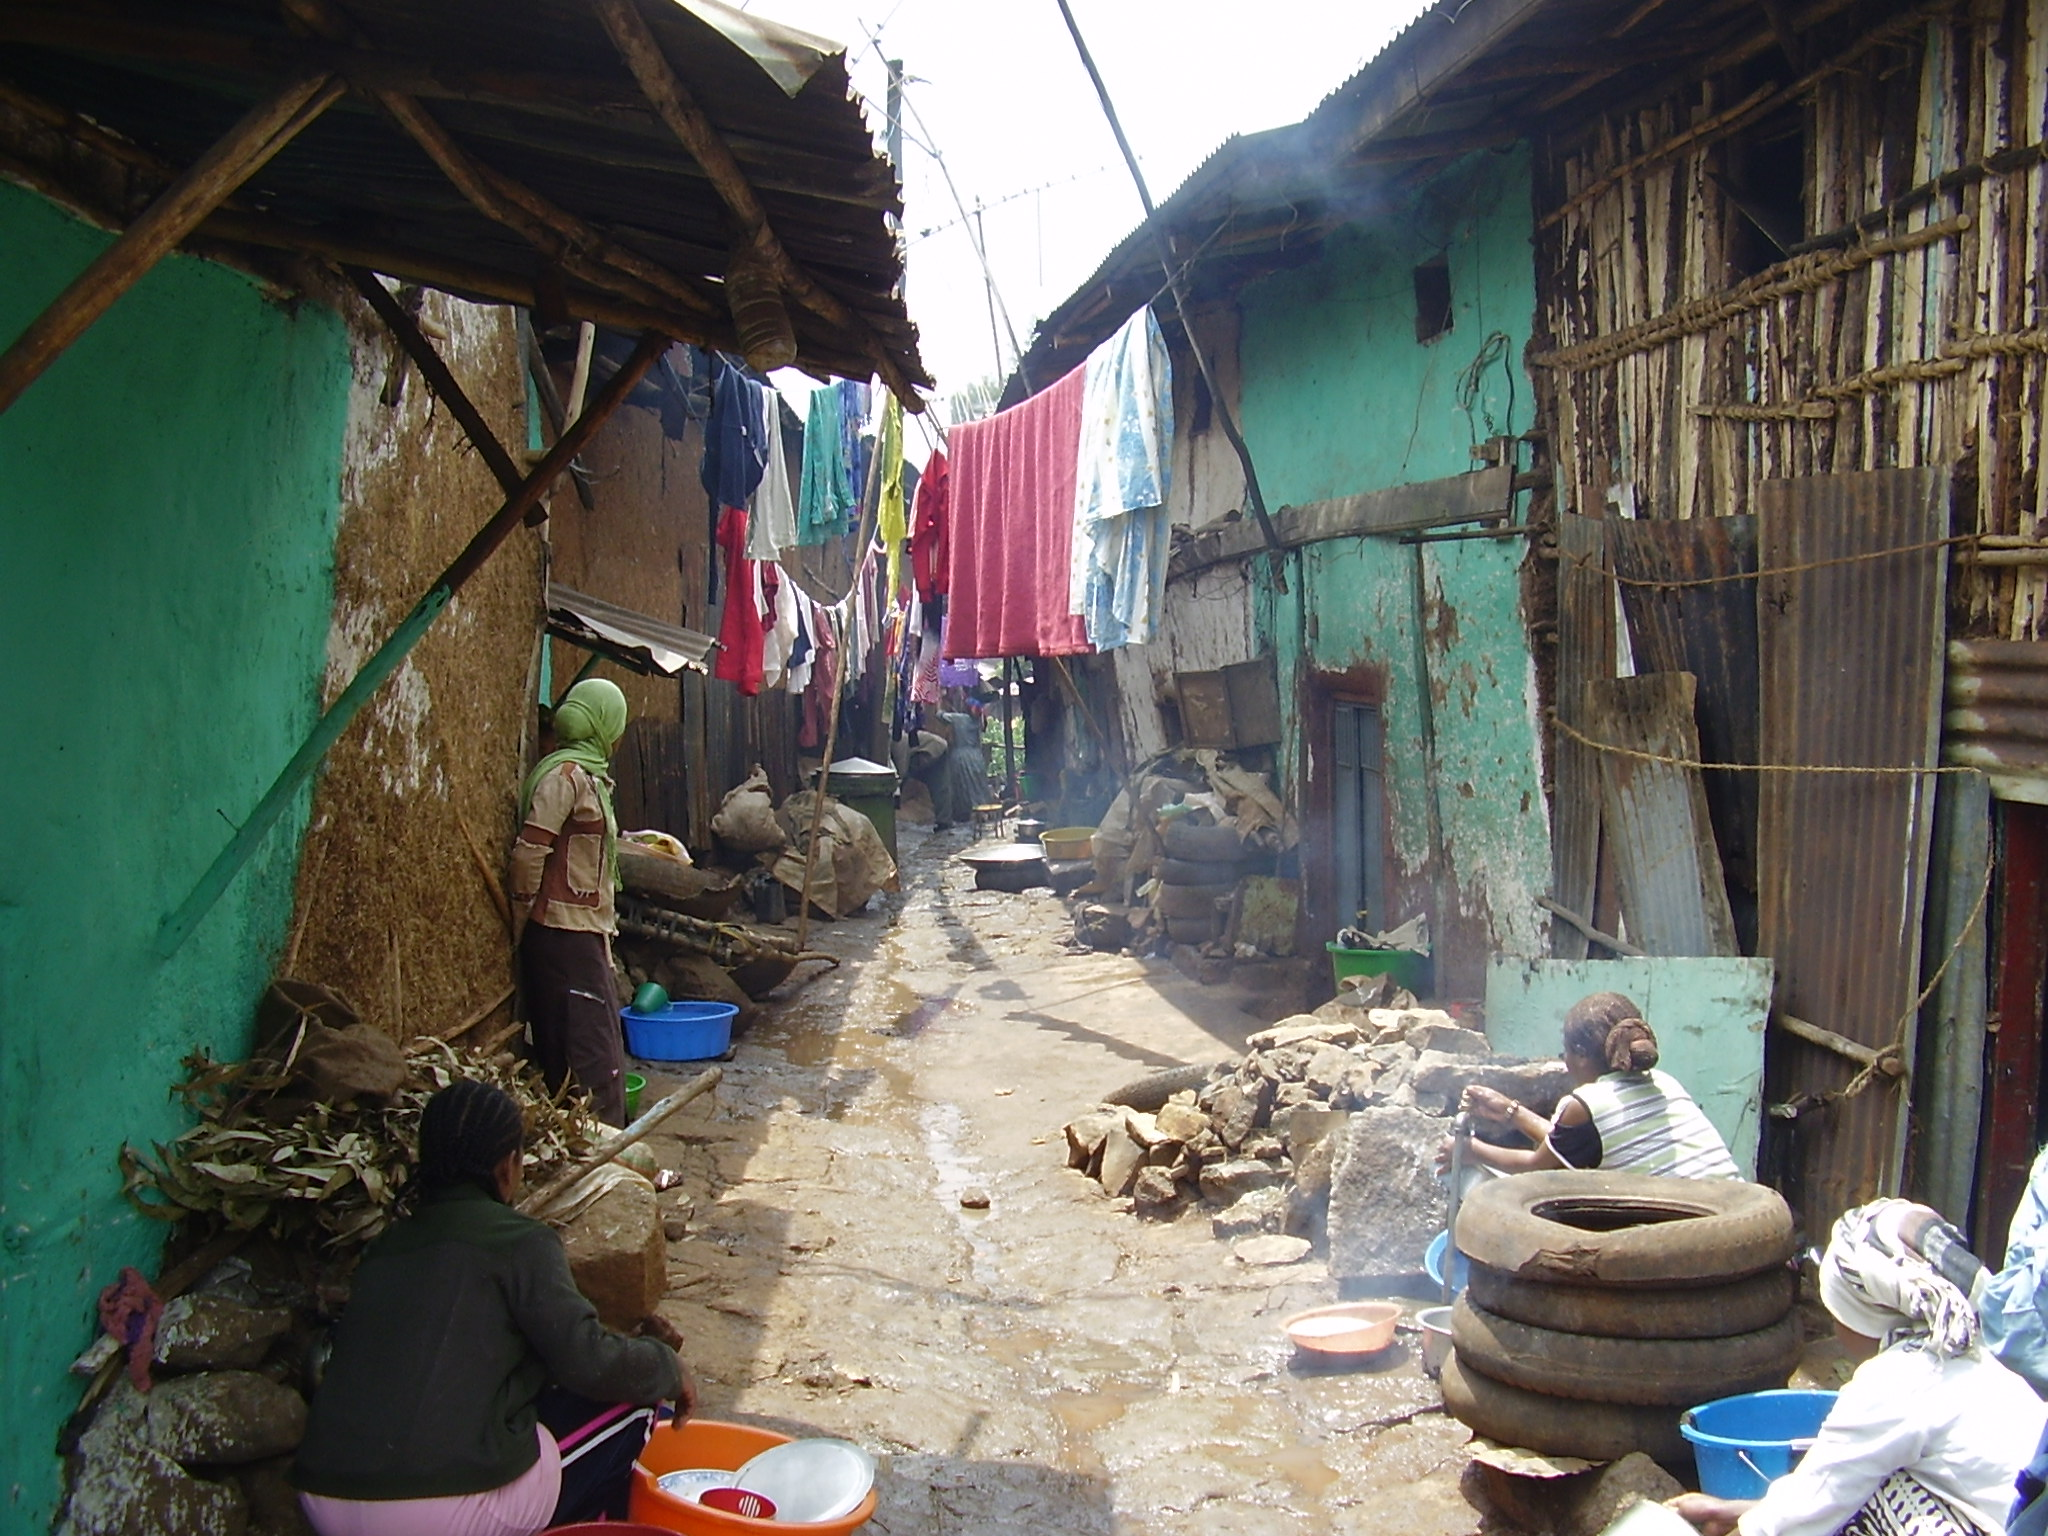 Many residents of Addis Ababa live in slums, struggling everyday to get food.